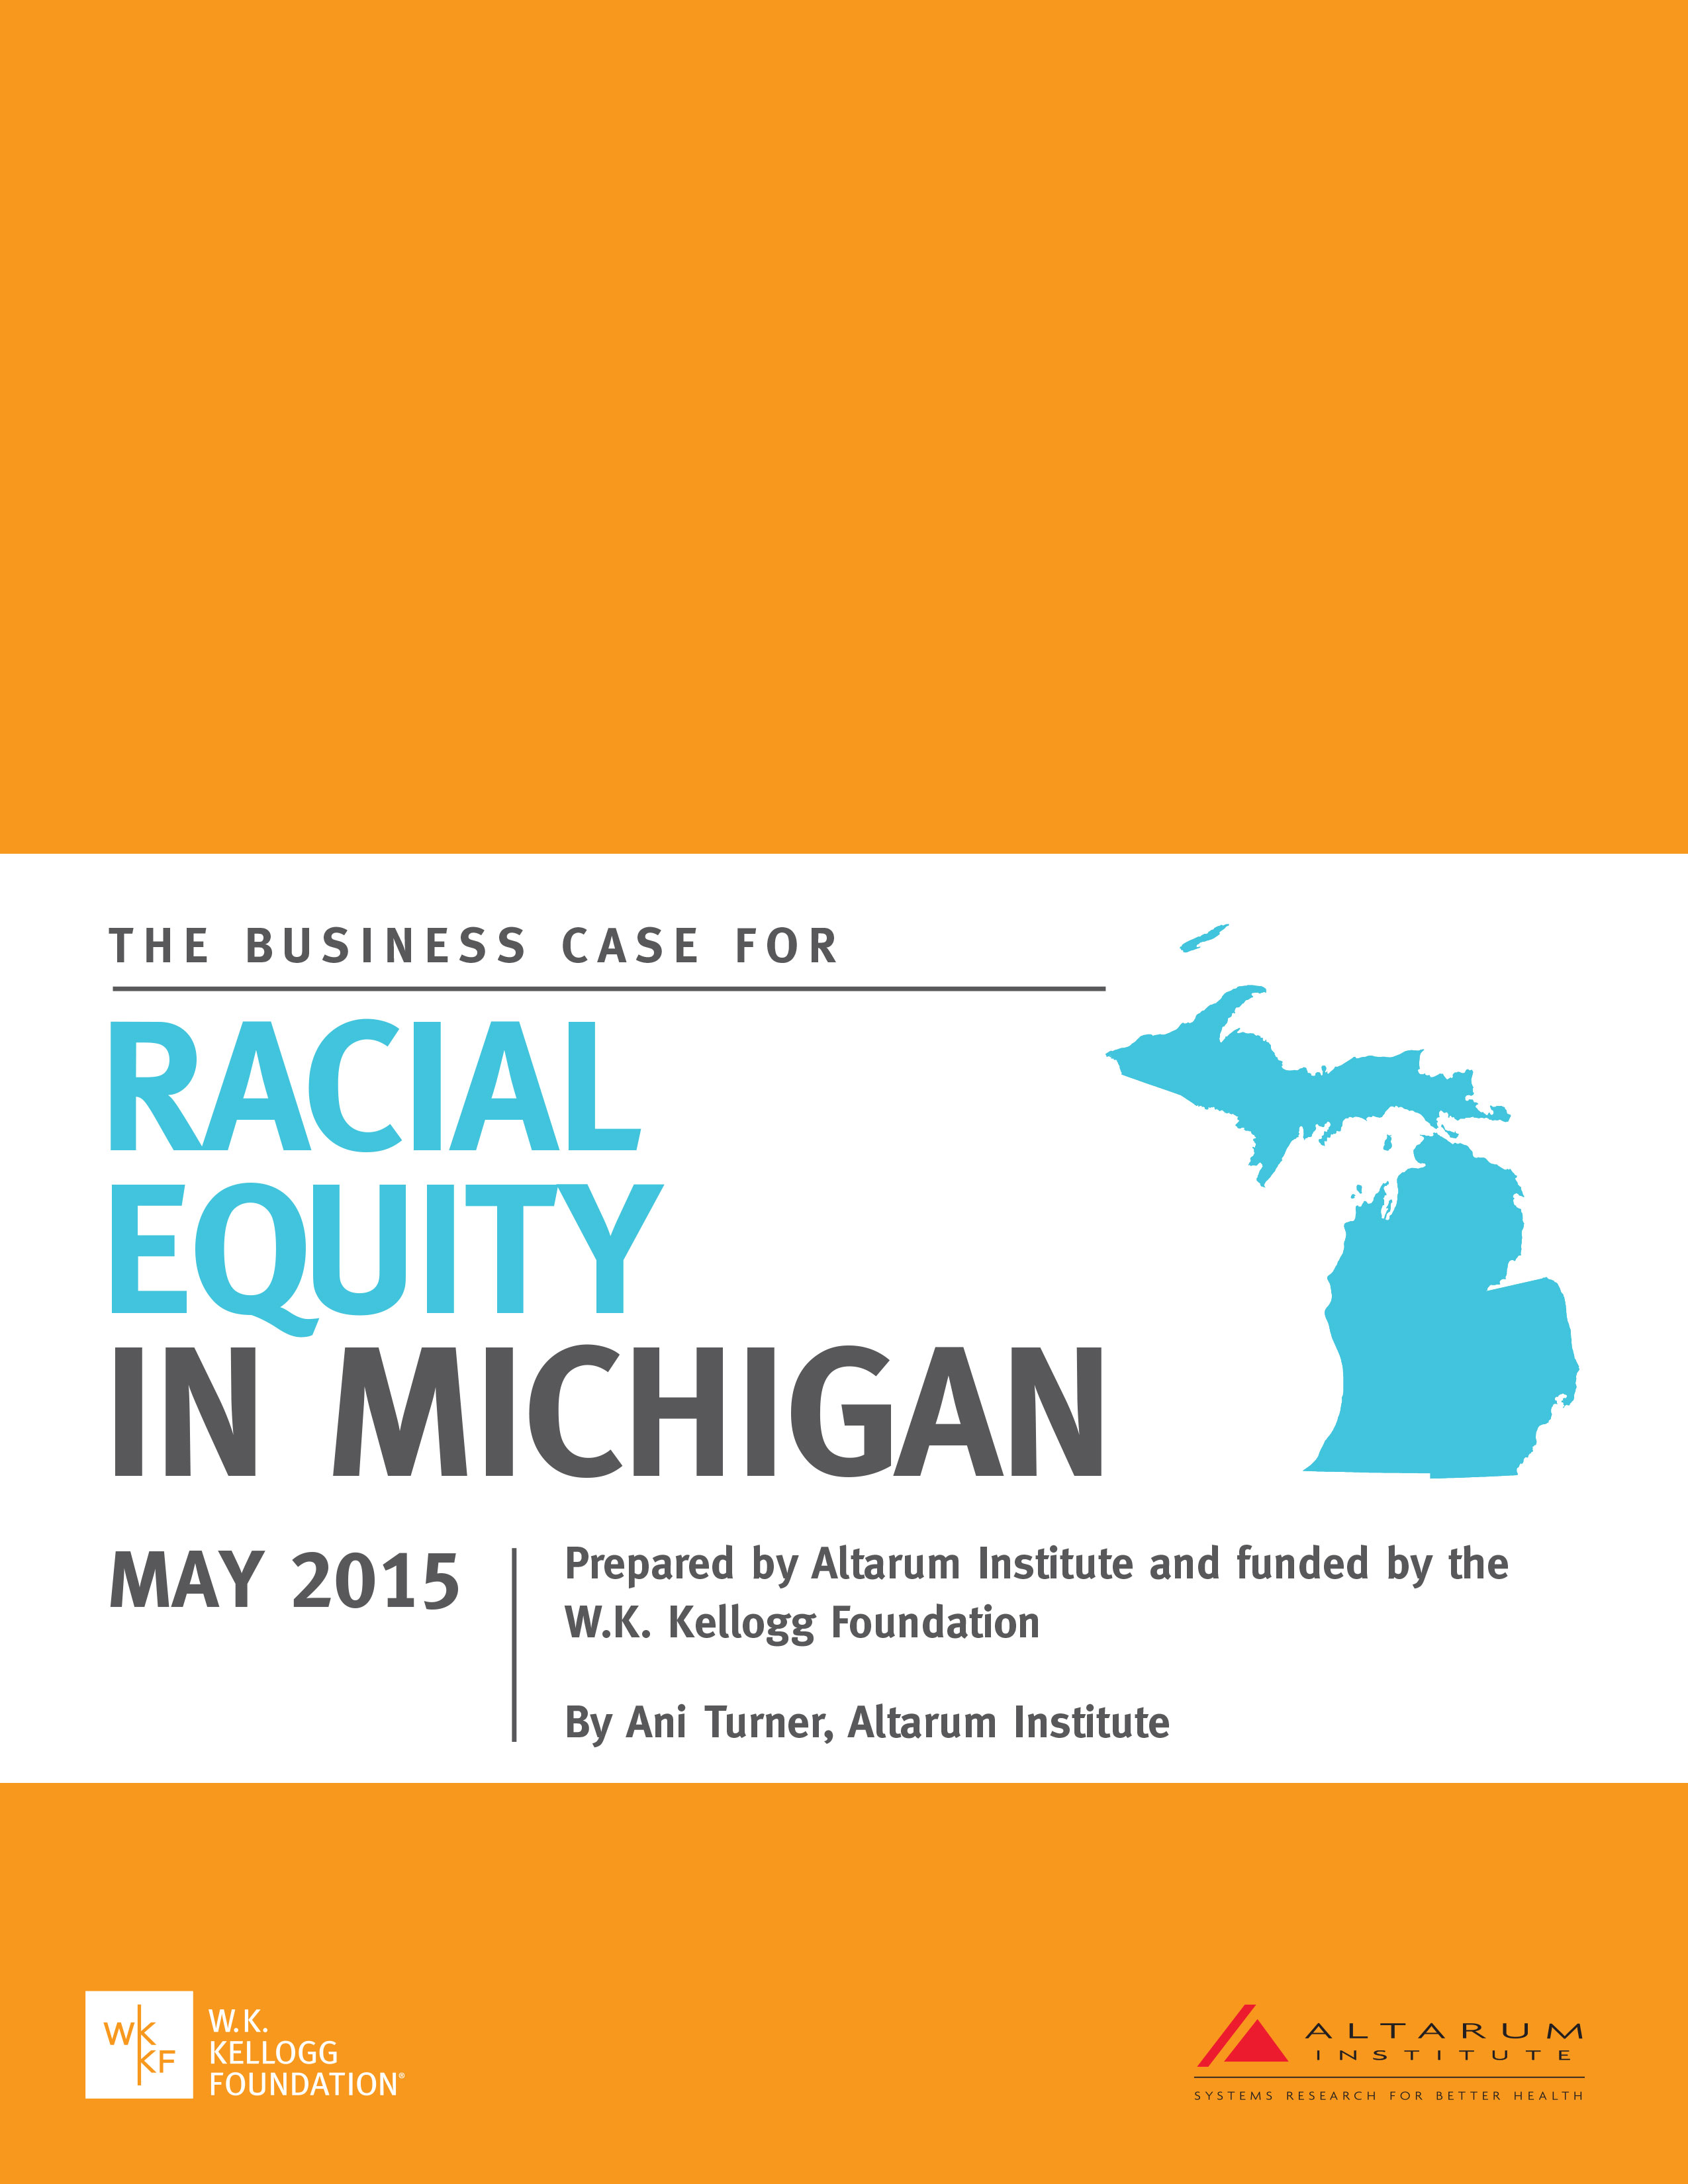 Business Case for Racial Equity in Michigan